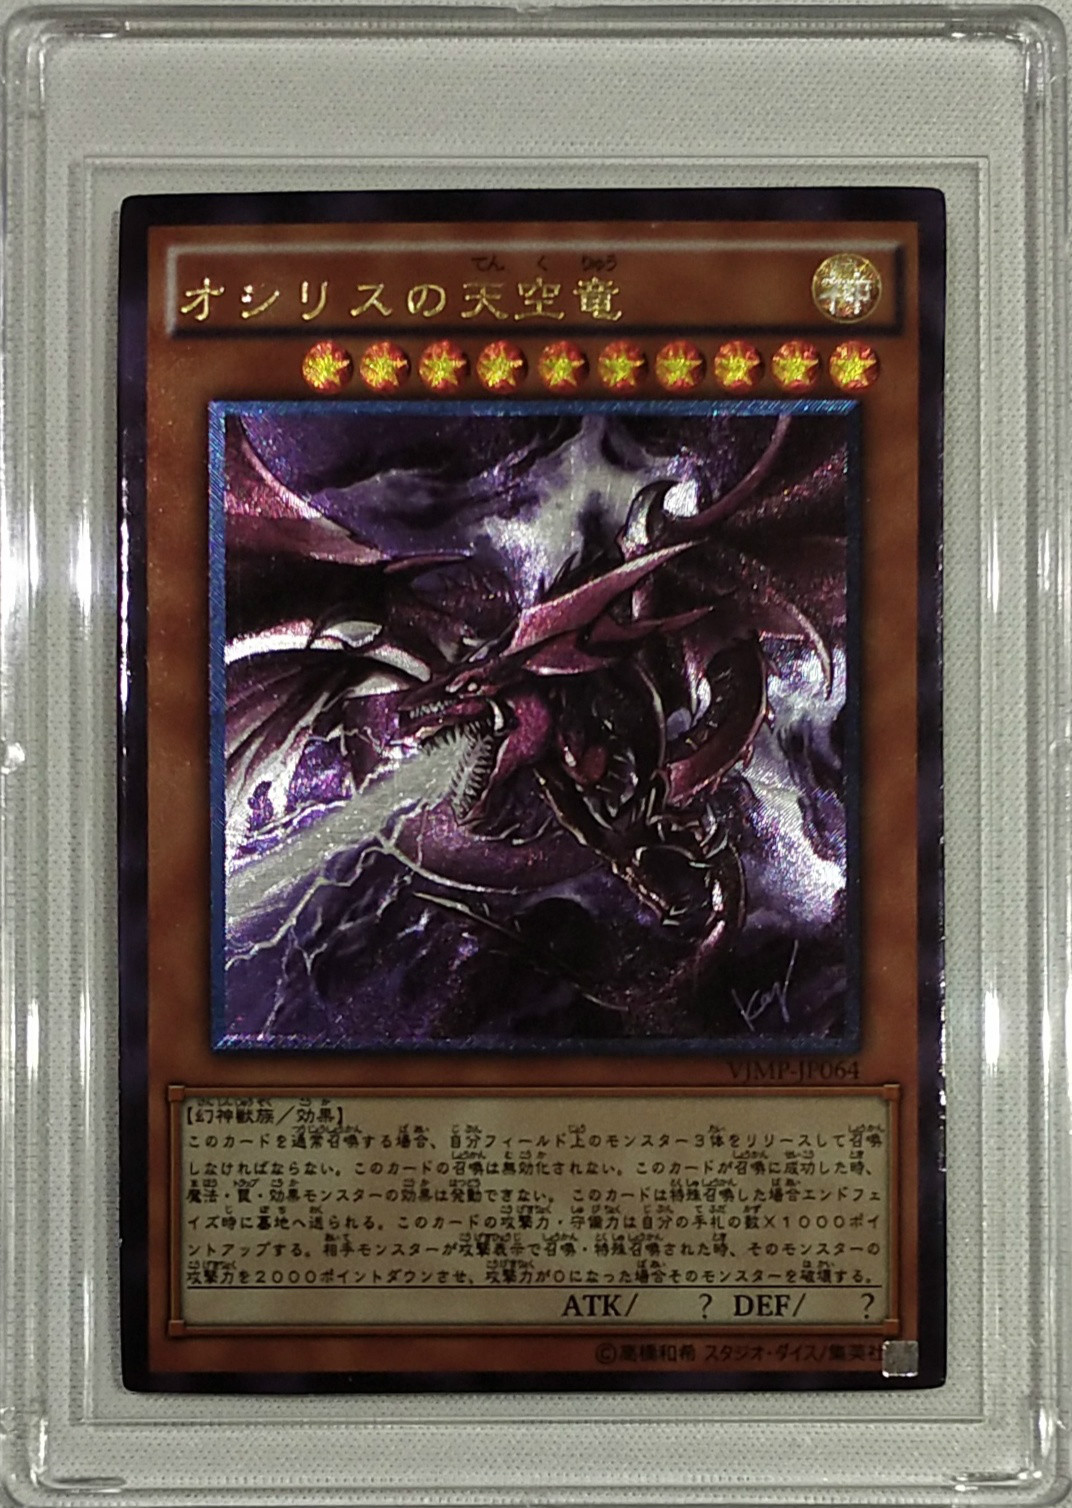 Yu Gi Oh Slifer The Sky Dragon DIY Stereoscopic Toys Hobbies Hobby Collectibles Game Collection Anime Cards